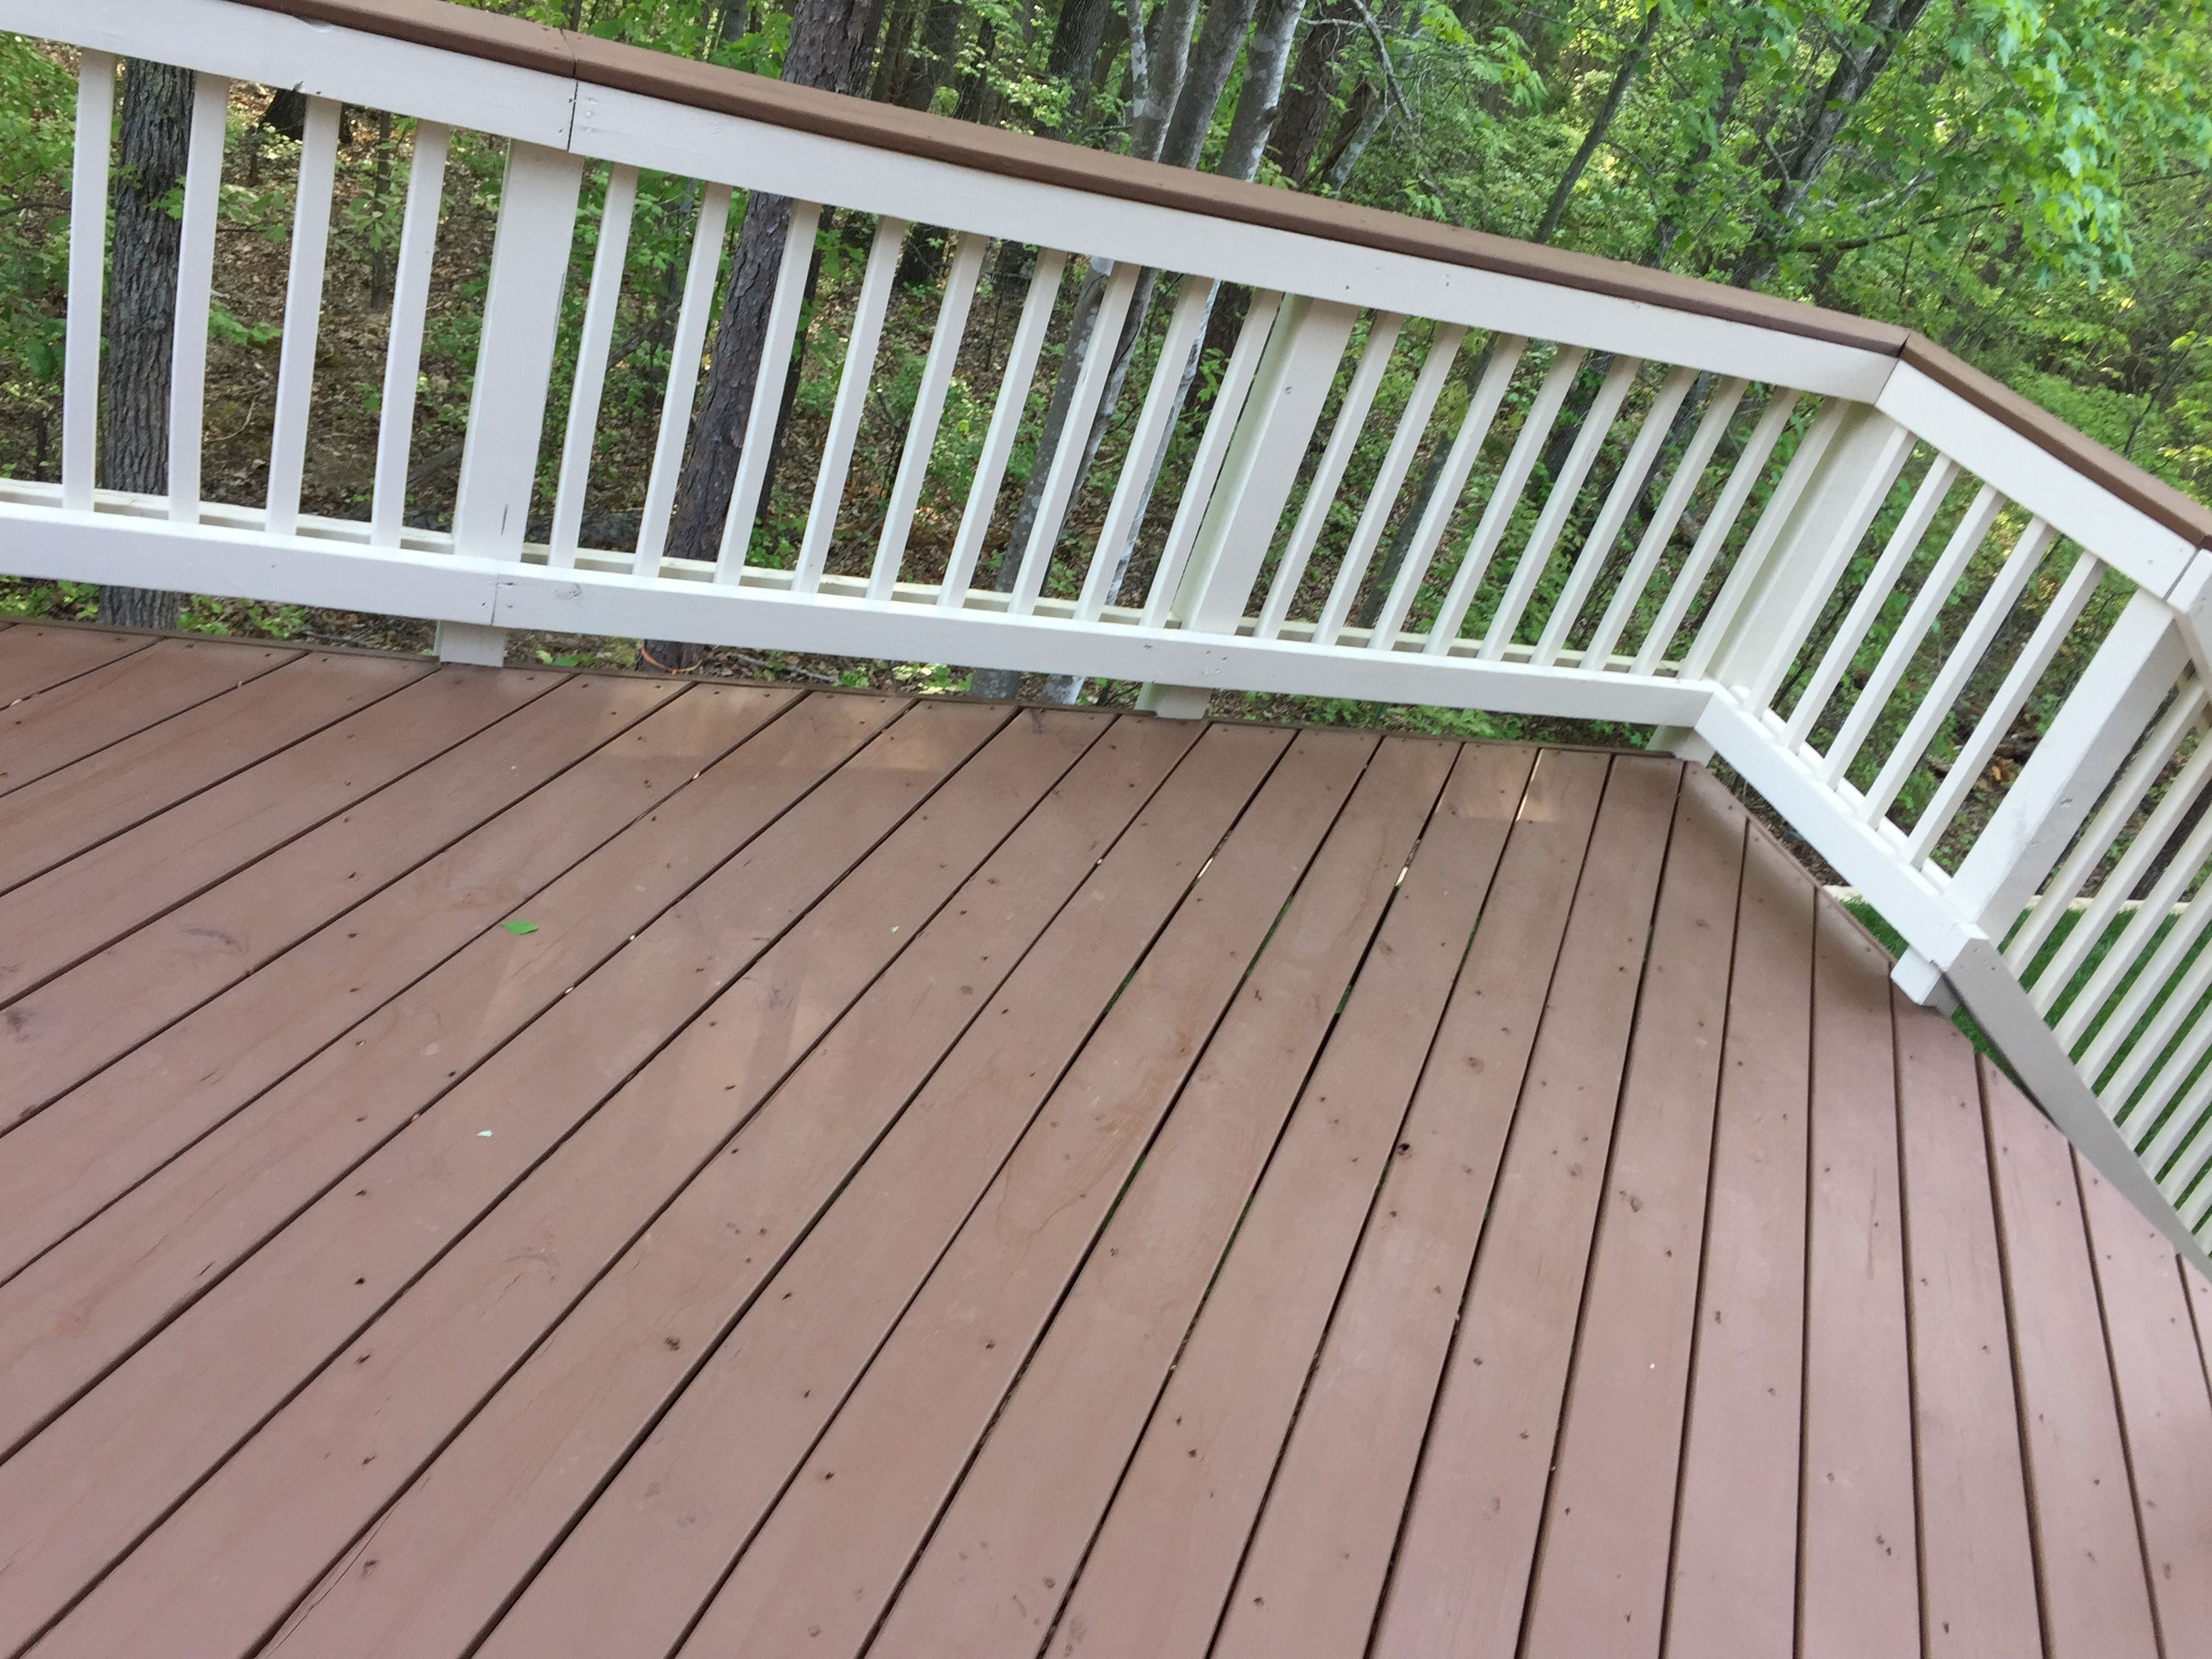 Sherwin Williams Deck Stain In Pinecone And Rail Paint In Navajo White Two Toned Deck Color Idea Deck Colors Sherwin Williams Deck Stain Deck Paint